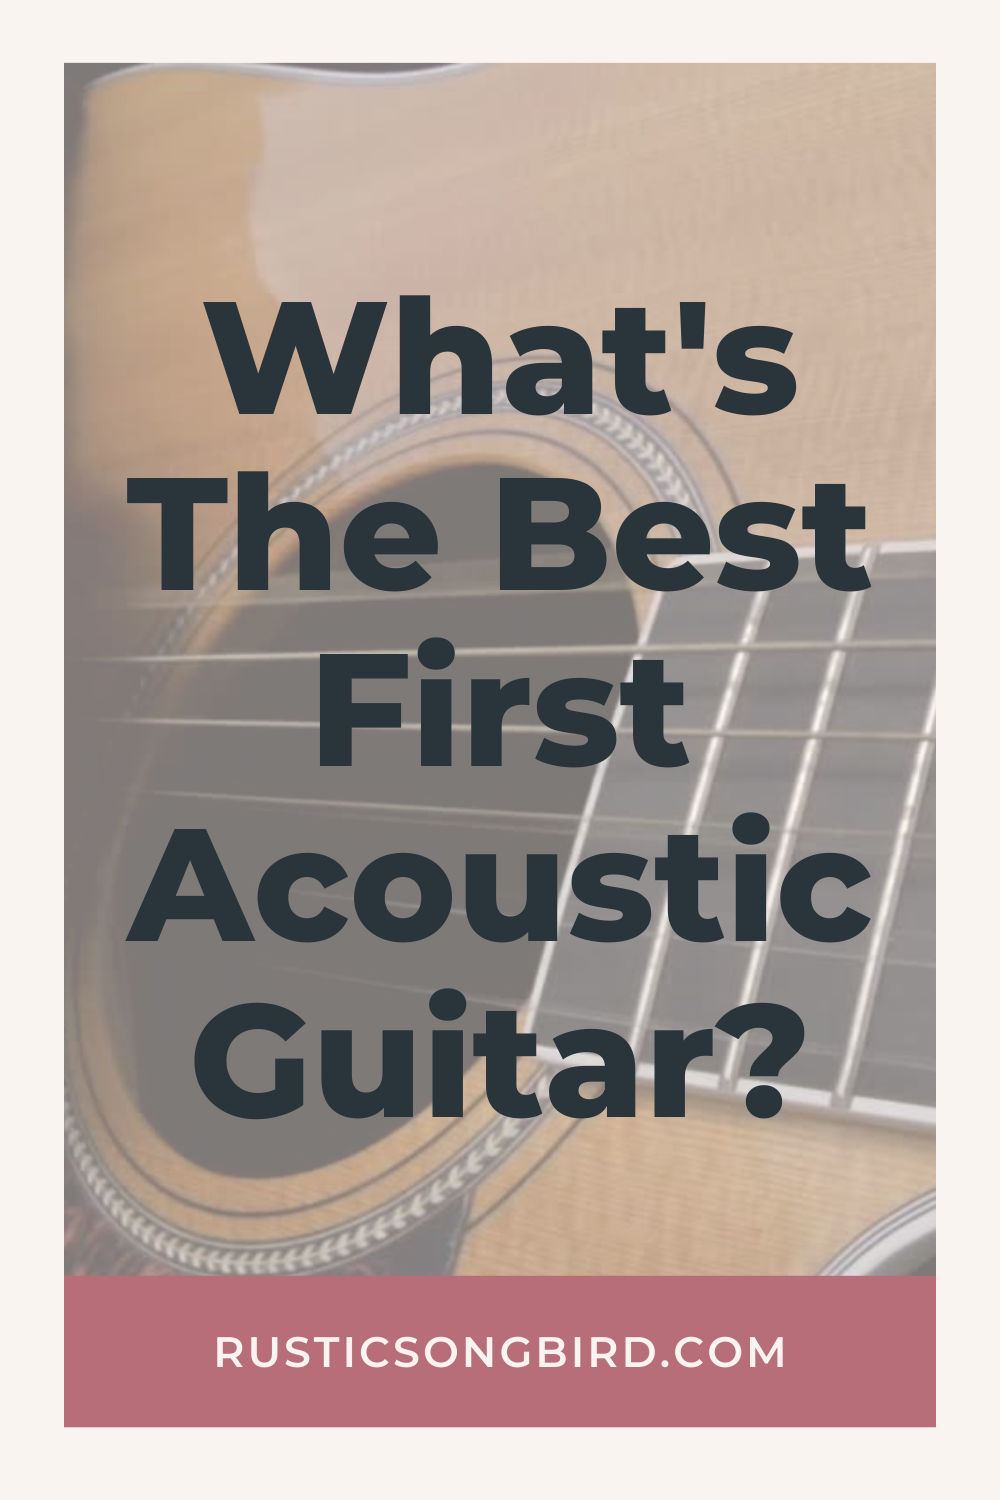 acoustic guitar in the background and text for the title of the blog post called